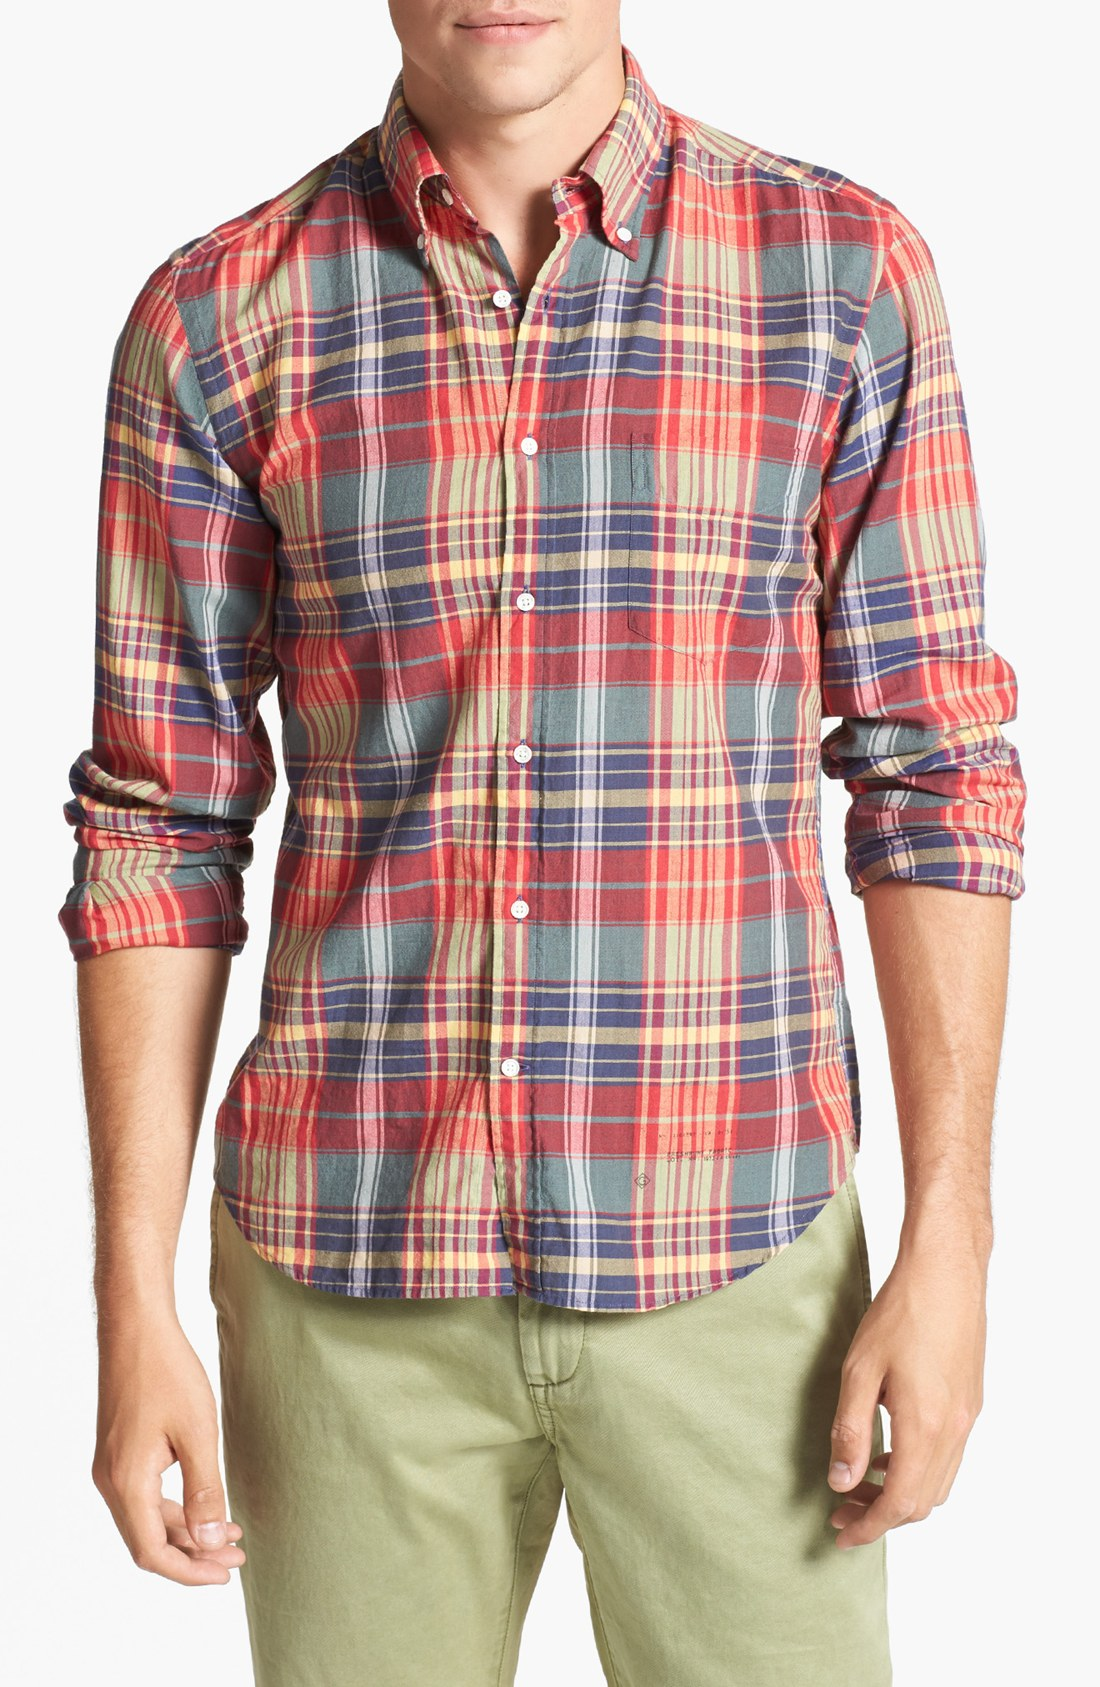 Shop men's madras shirts at bestkapper.tk Factory and find everyday deals on plaid shirts for men.